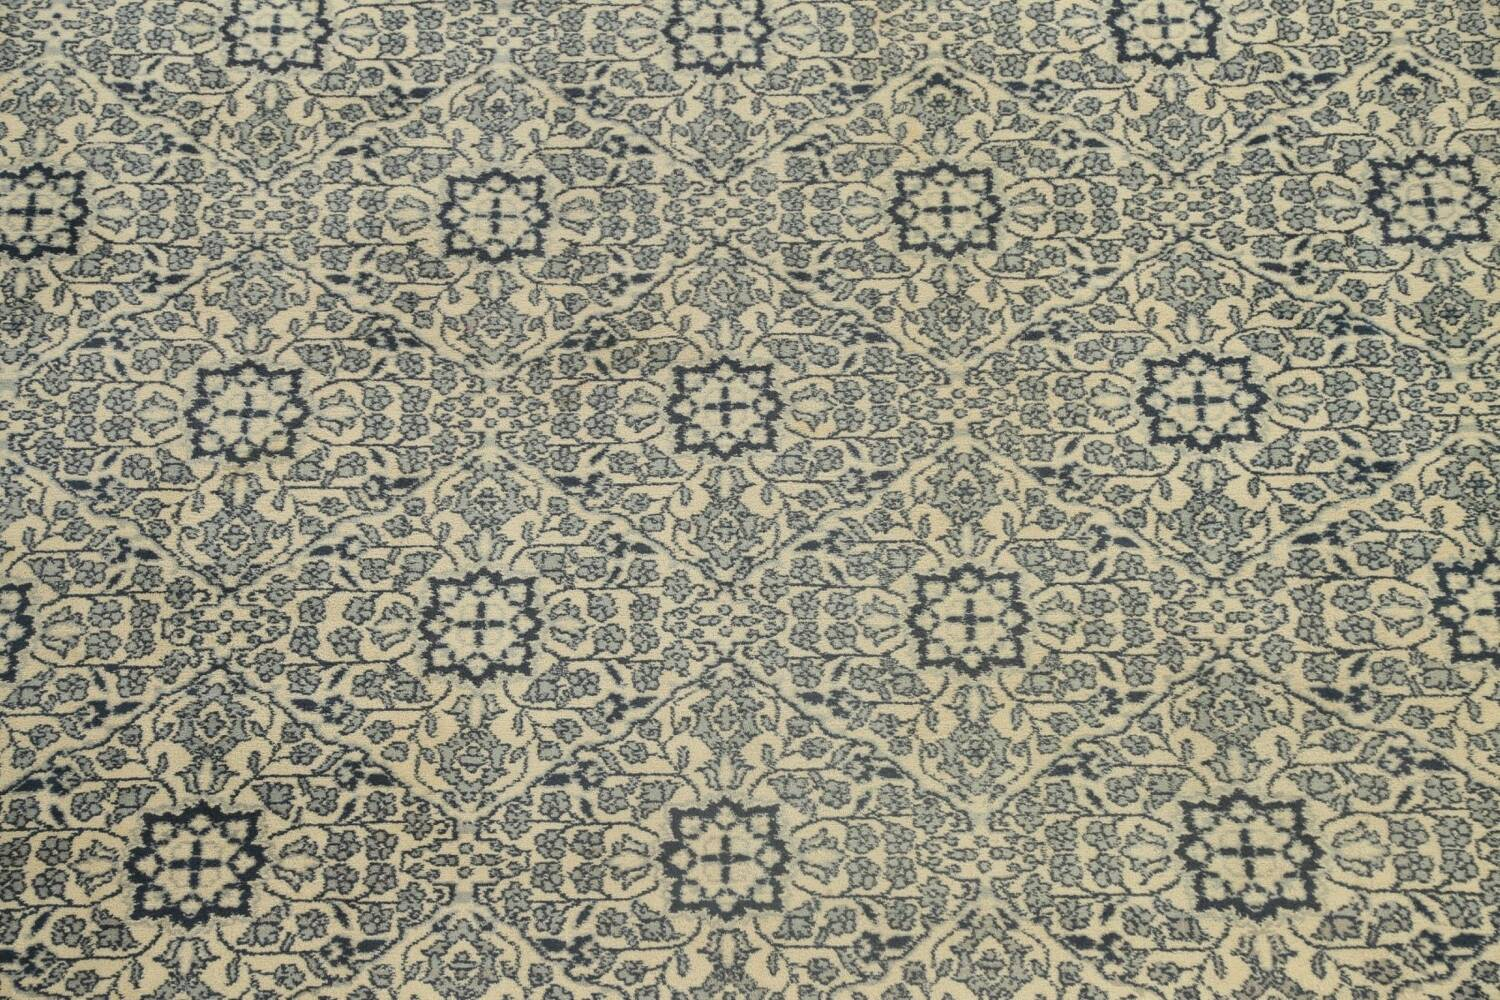 Large All-Over Oushak Oriental Area Rug 11x15 image 4